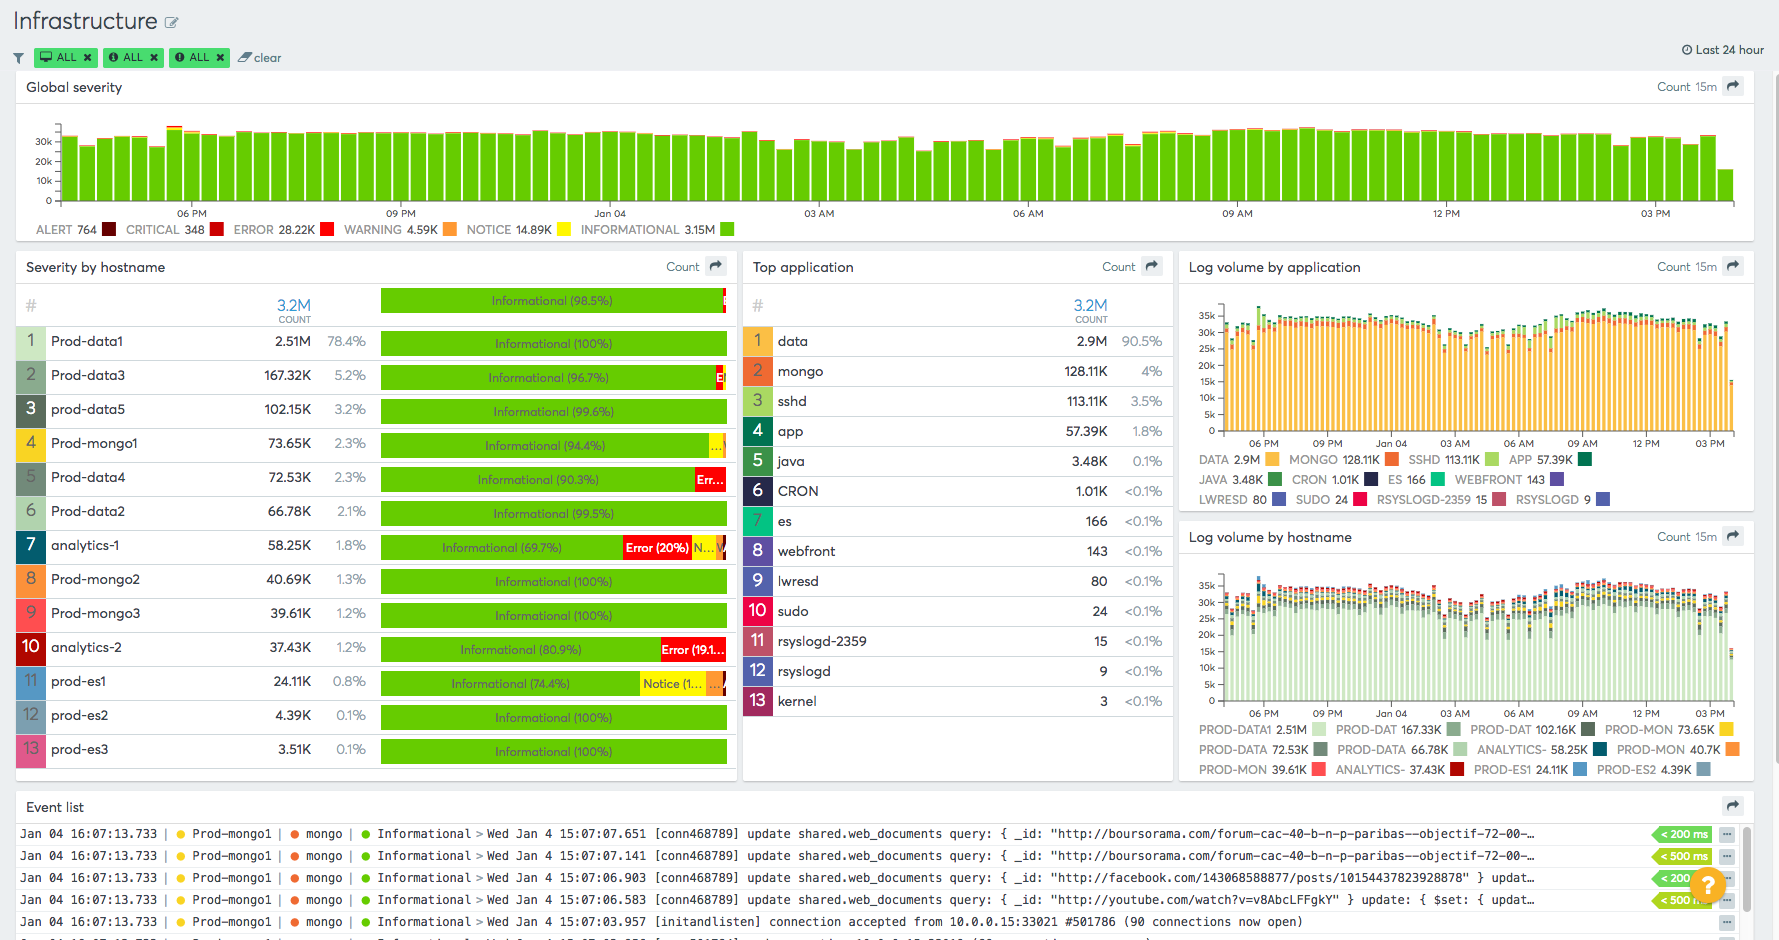 Infrastructure overview dashboard